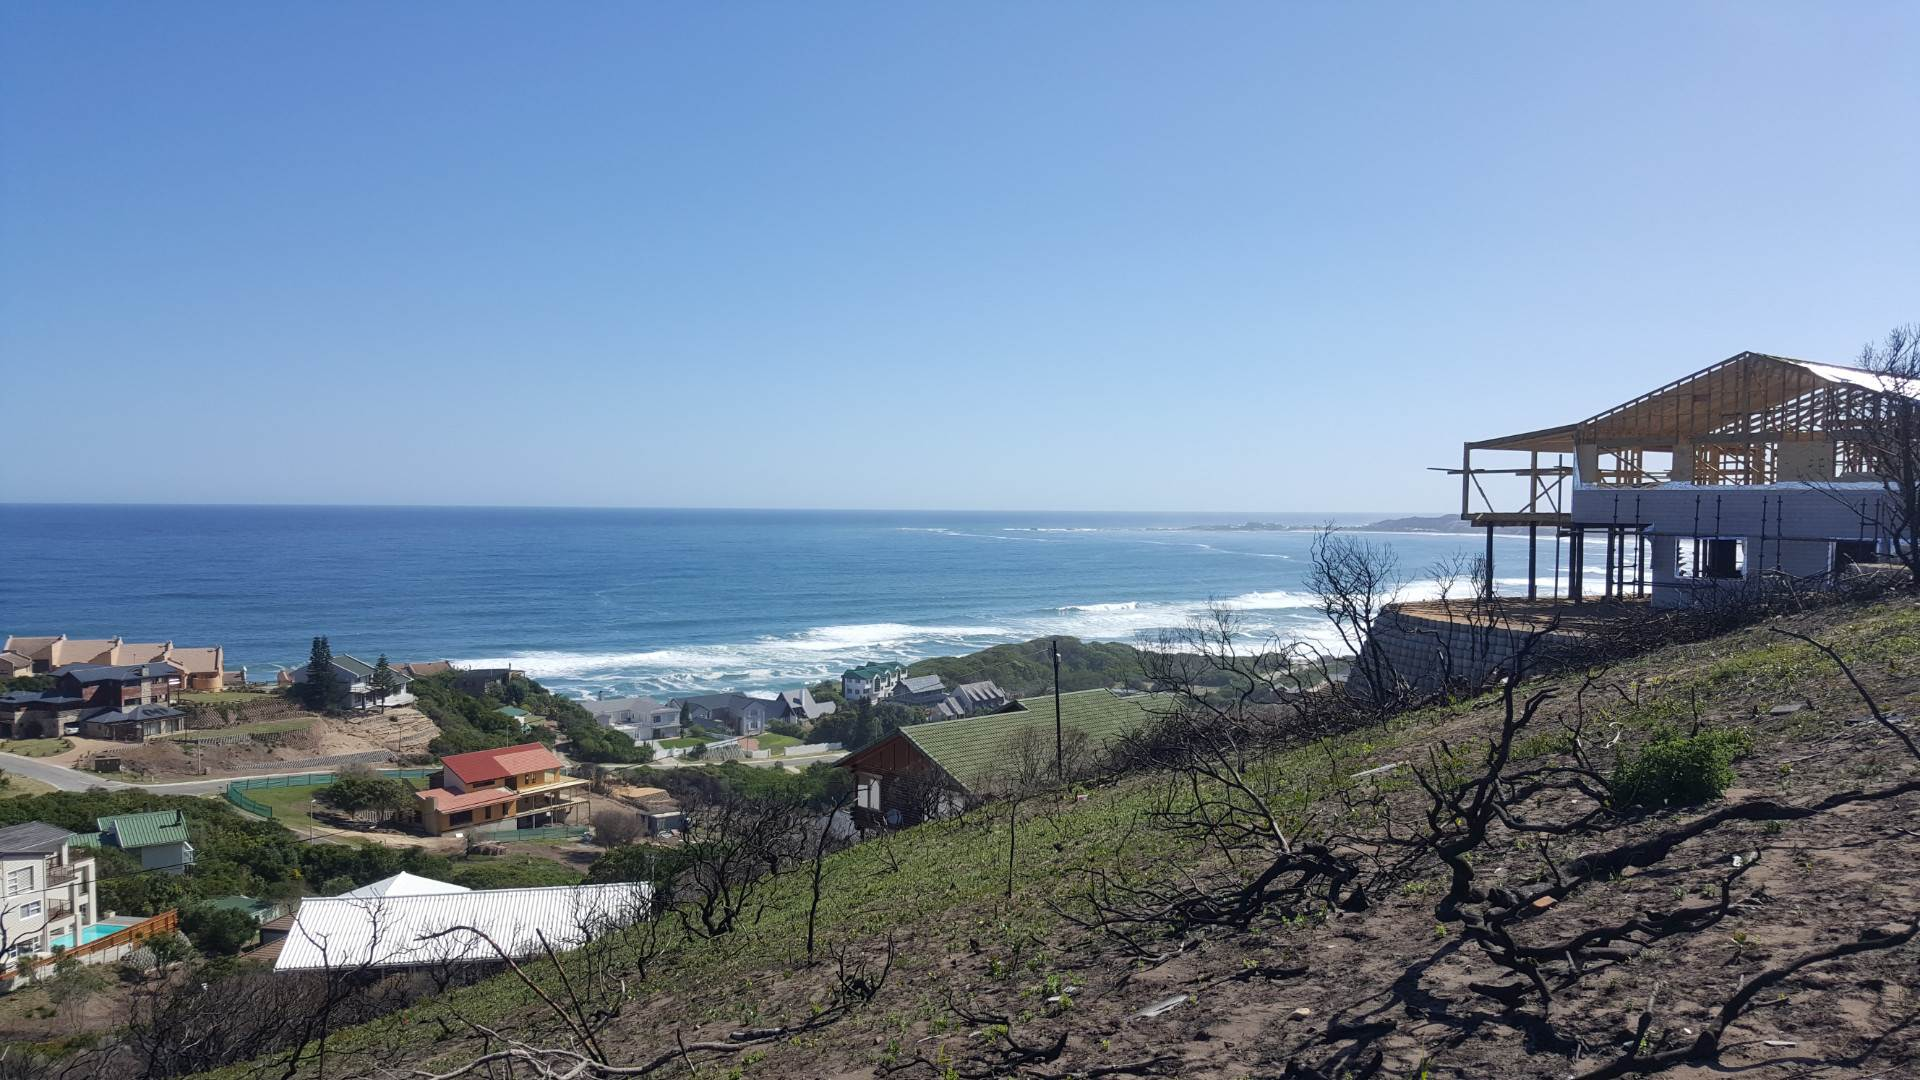 Vacant Land Residential For Sale In Brenton On Sea